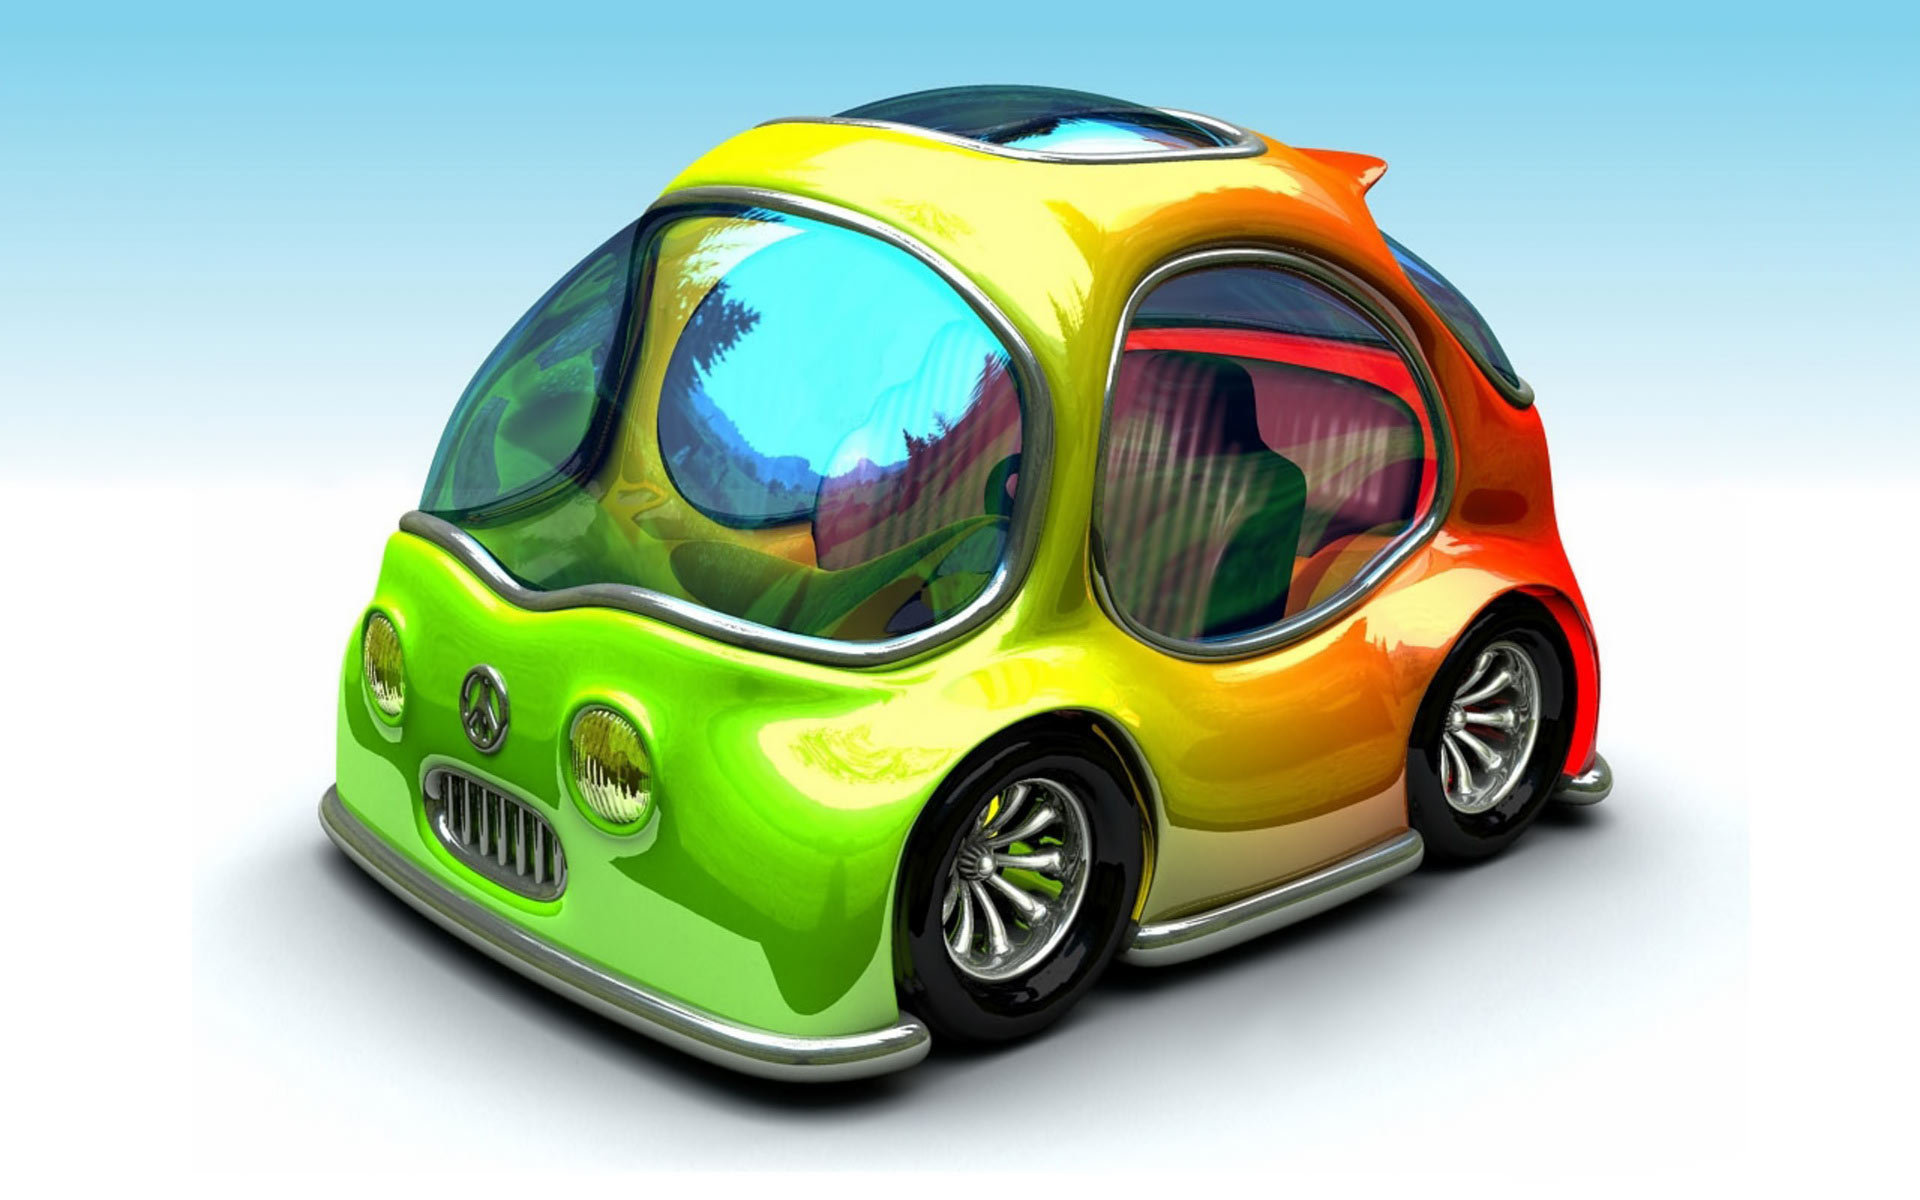 p.s. I love this toy car, it's so cool!